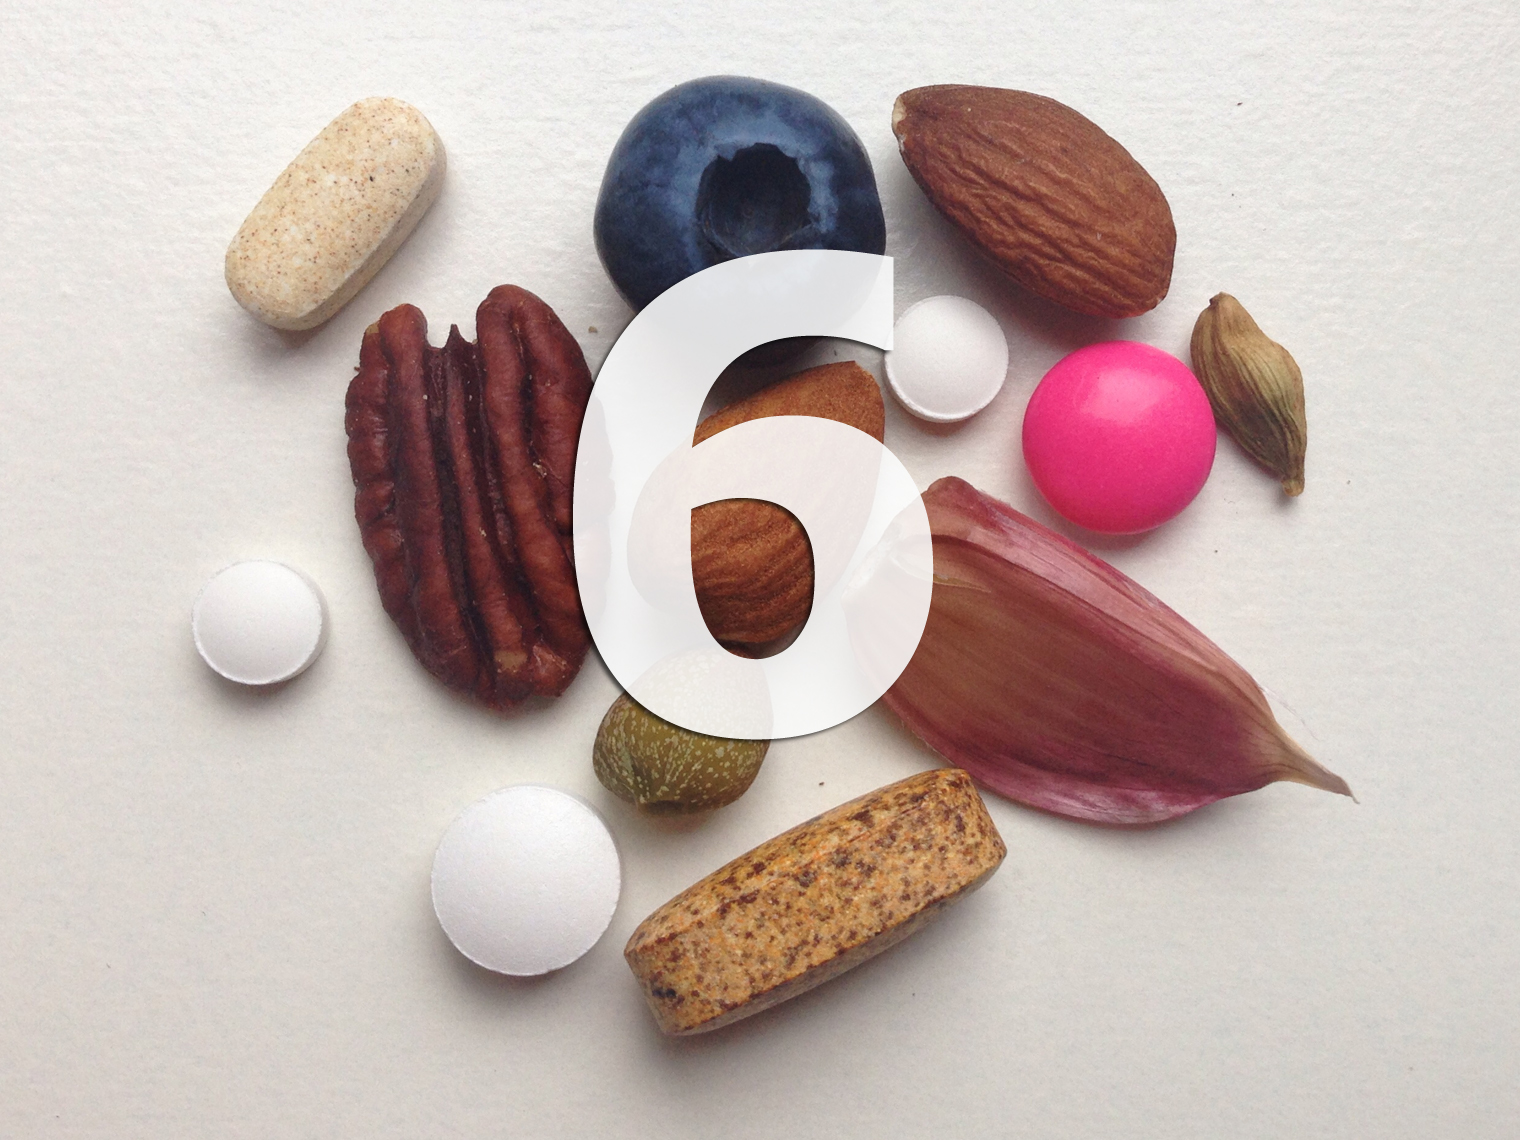 6 nutraceuticals to combat your digestive troubles